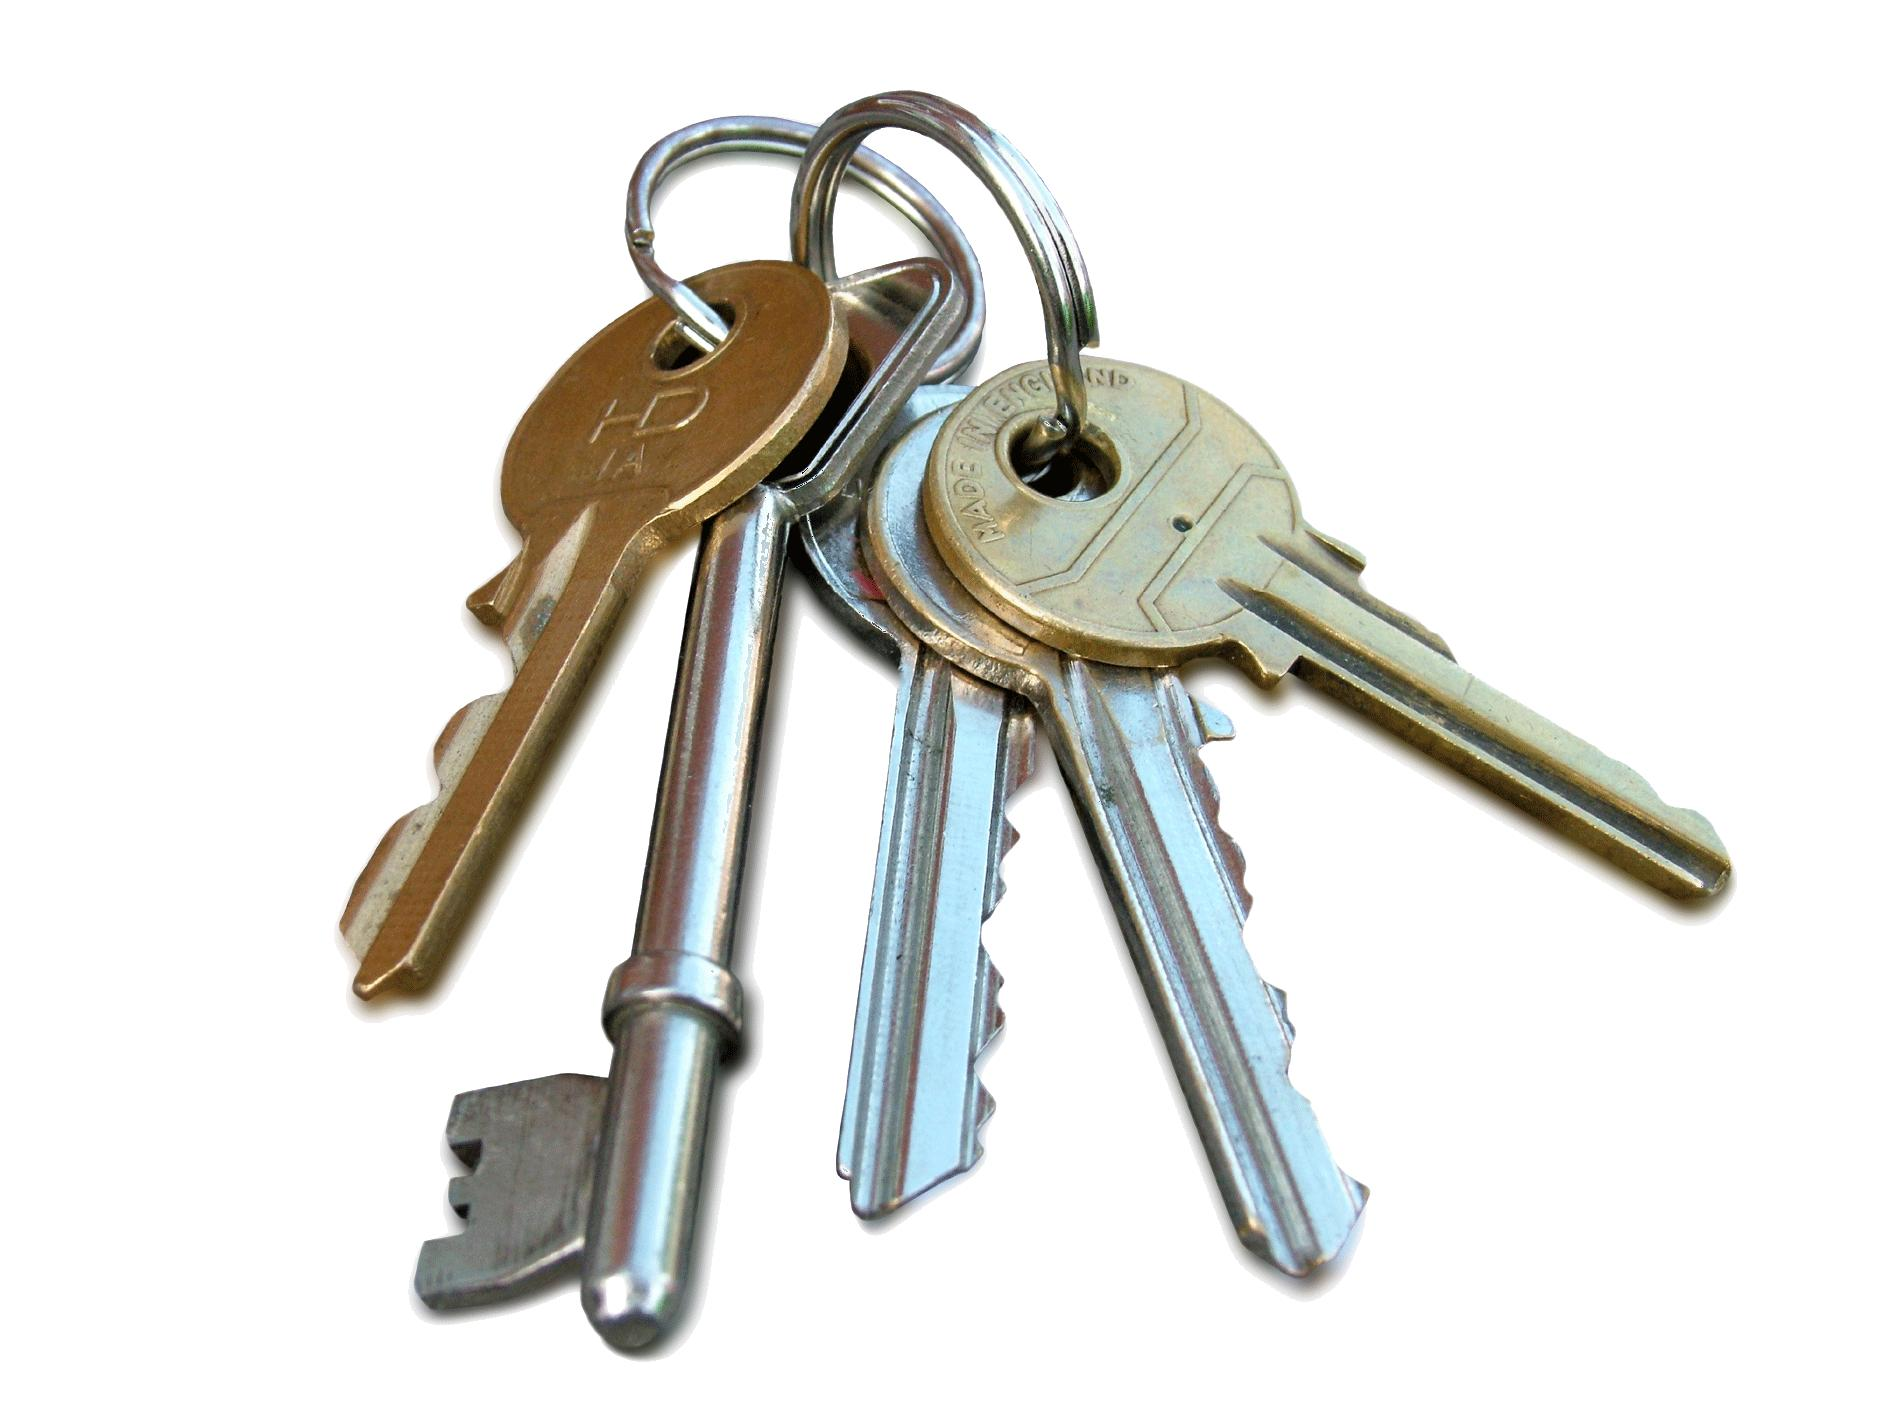 http://40unlocksmyride.com/wp-content/uploads/sites/3/2014/09/Locksmith.jpg